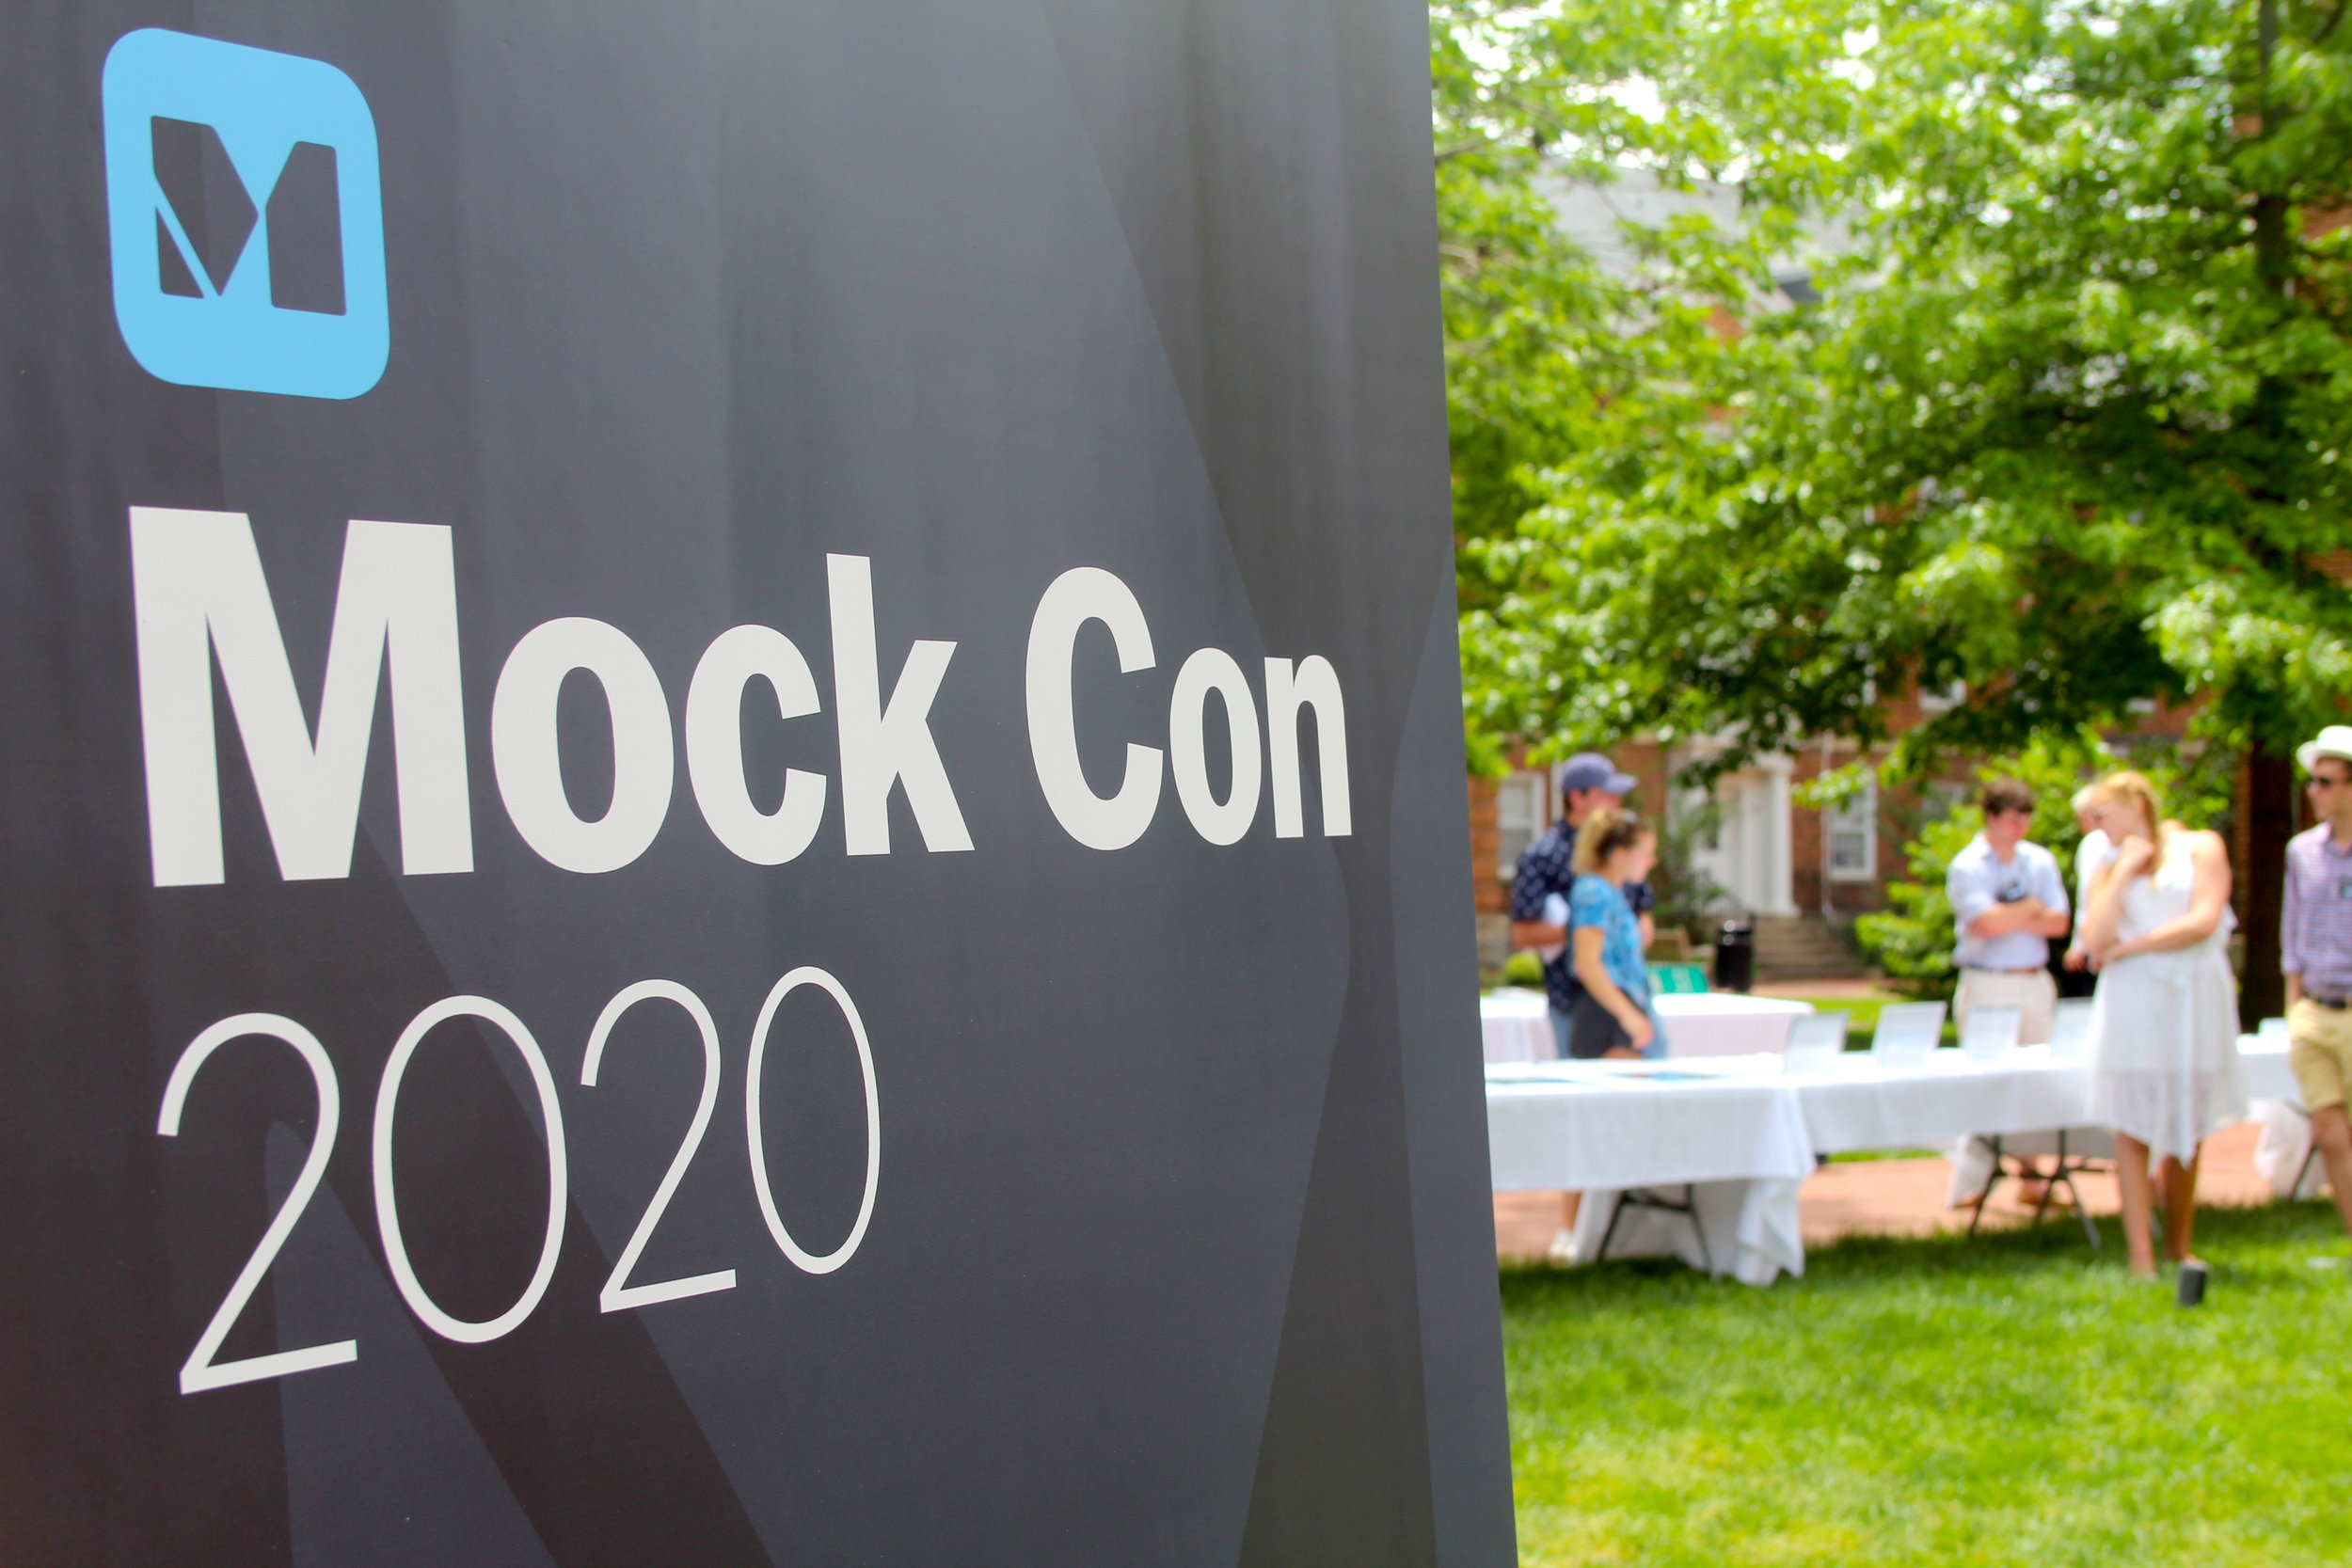 Mock Con signage directs campus visitors to the Silent Auction and Memorabilia Table.